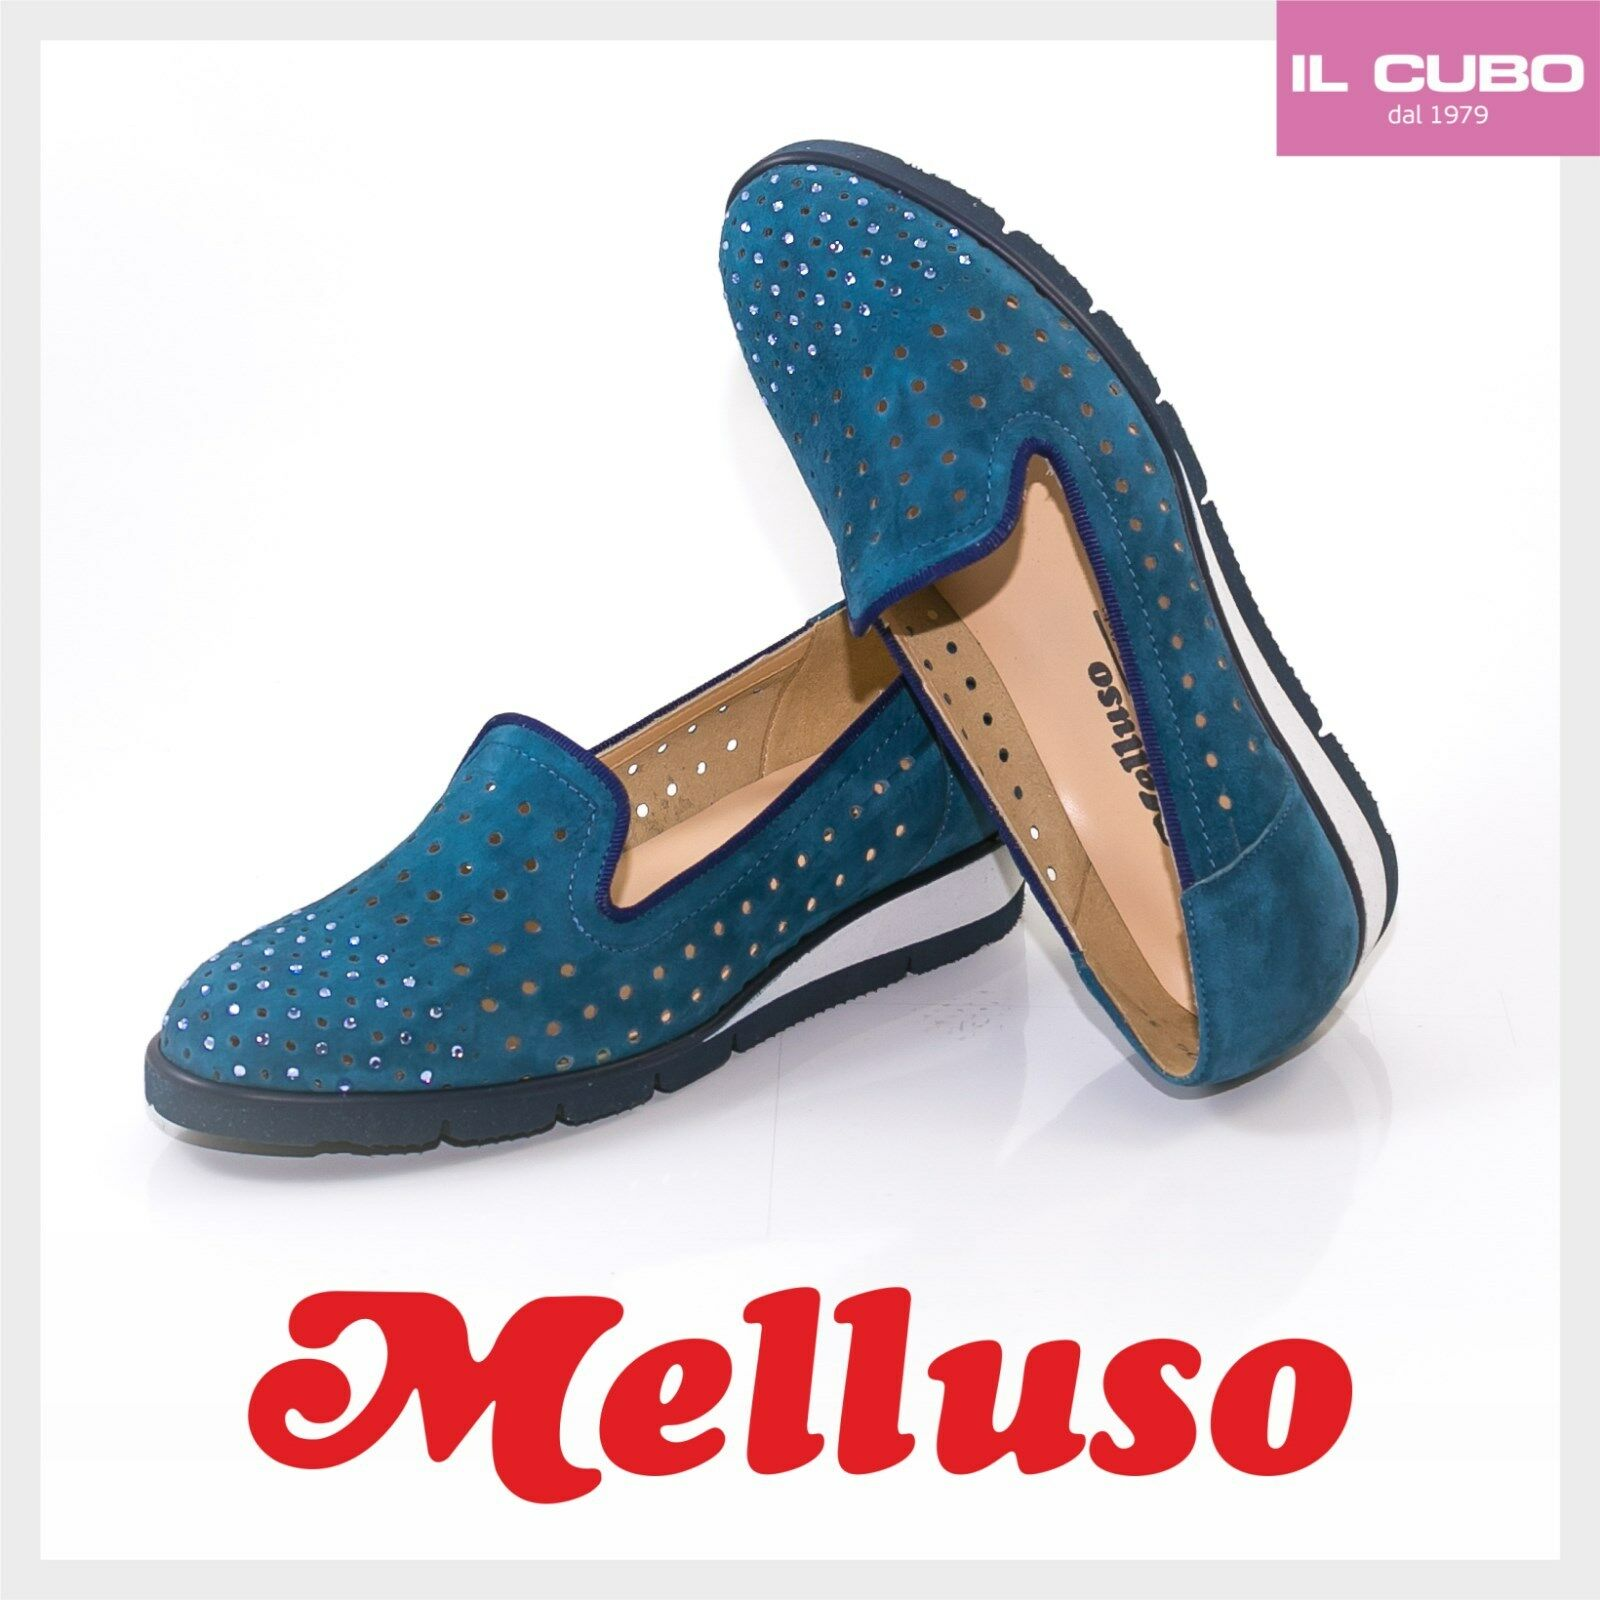 MELLUSO MOCASSINO Damens CAMOSCIO CAMOSCIO Damens COLORE BLU ZEPPA H 2 CM MADE IN ITALY 72a820